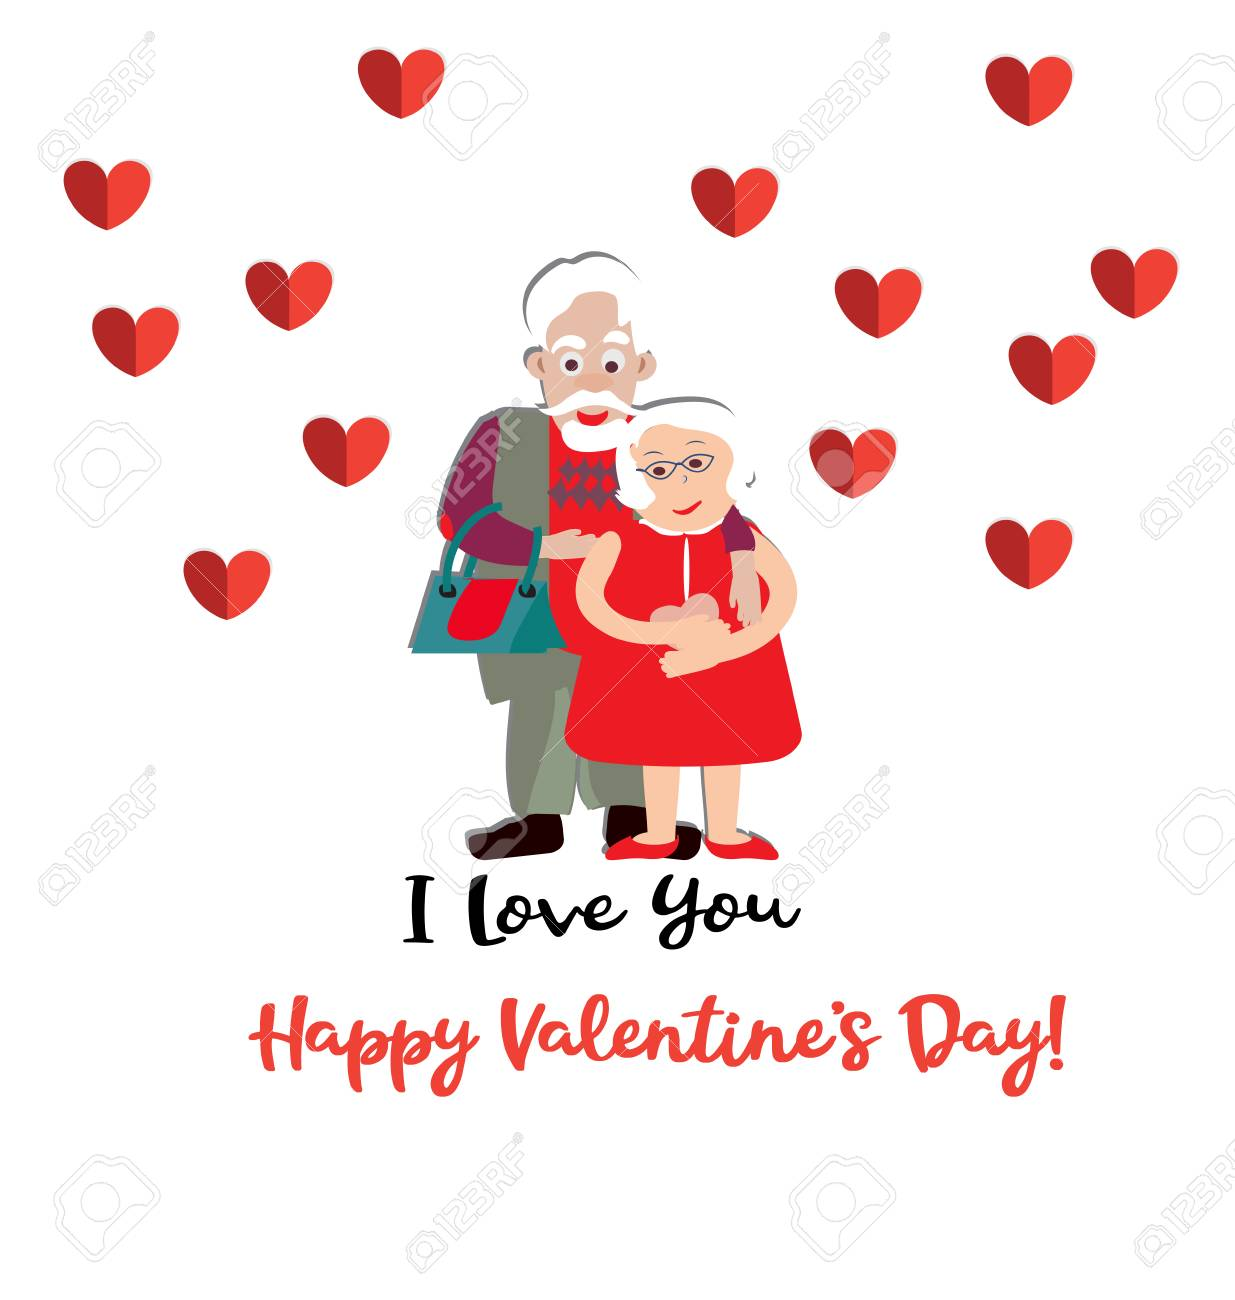 Lovely Old Couple Vector Illustration Valentine Day Royalty Free